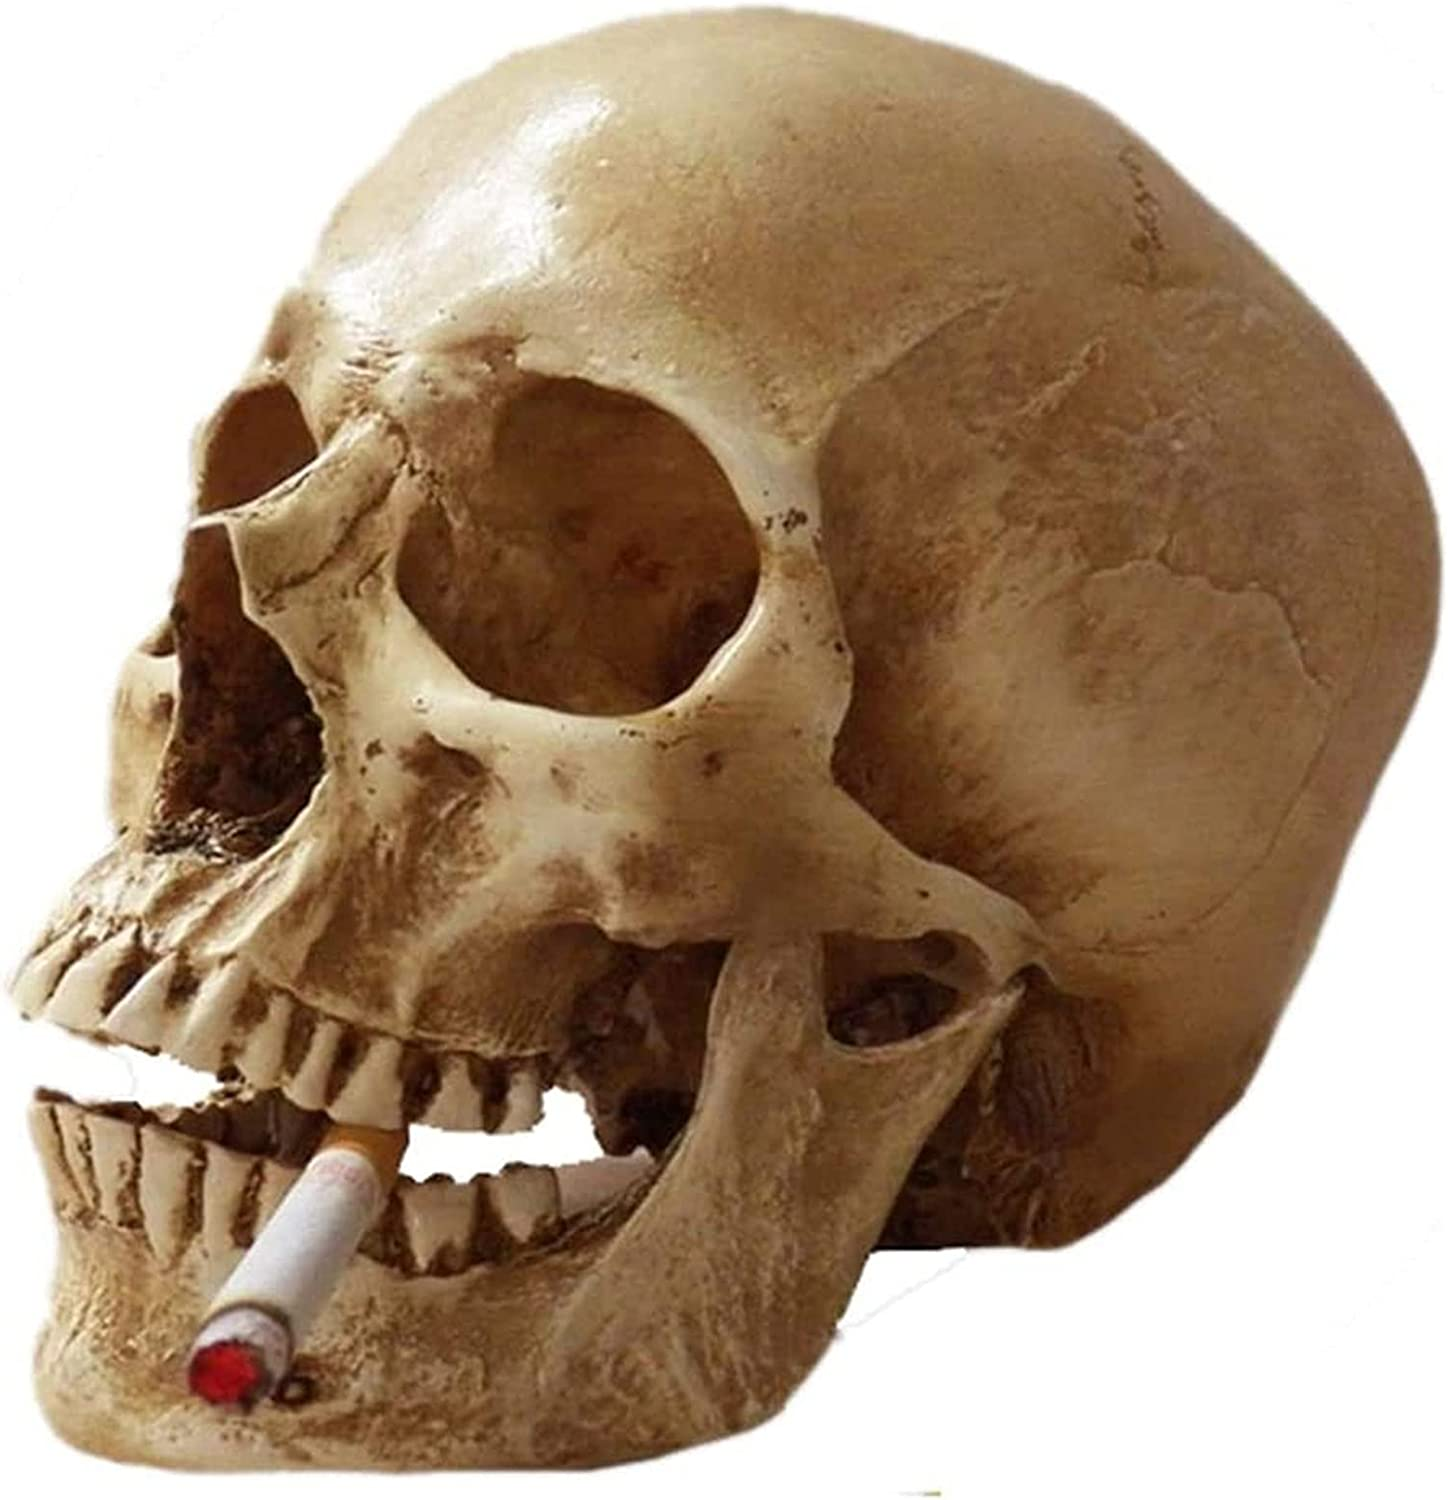 Life Size Max 63% OFF Human Skull Max 52% OFF Anatomy Model for An Resin Medical Replica